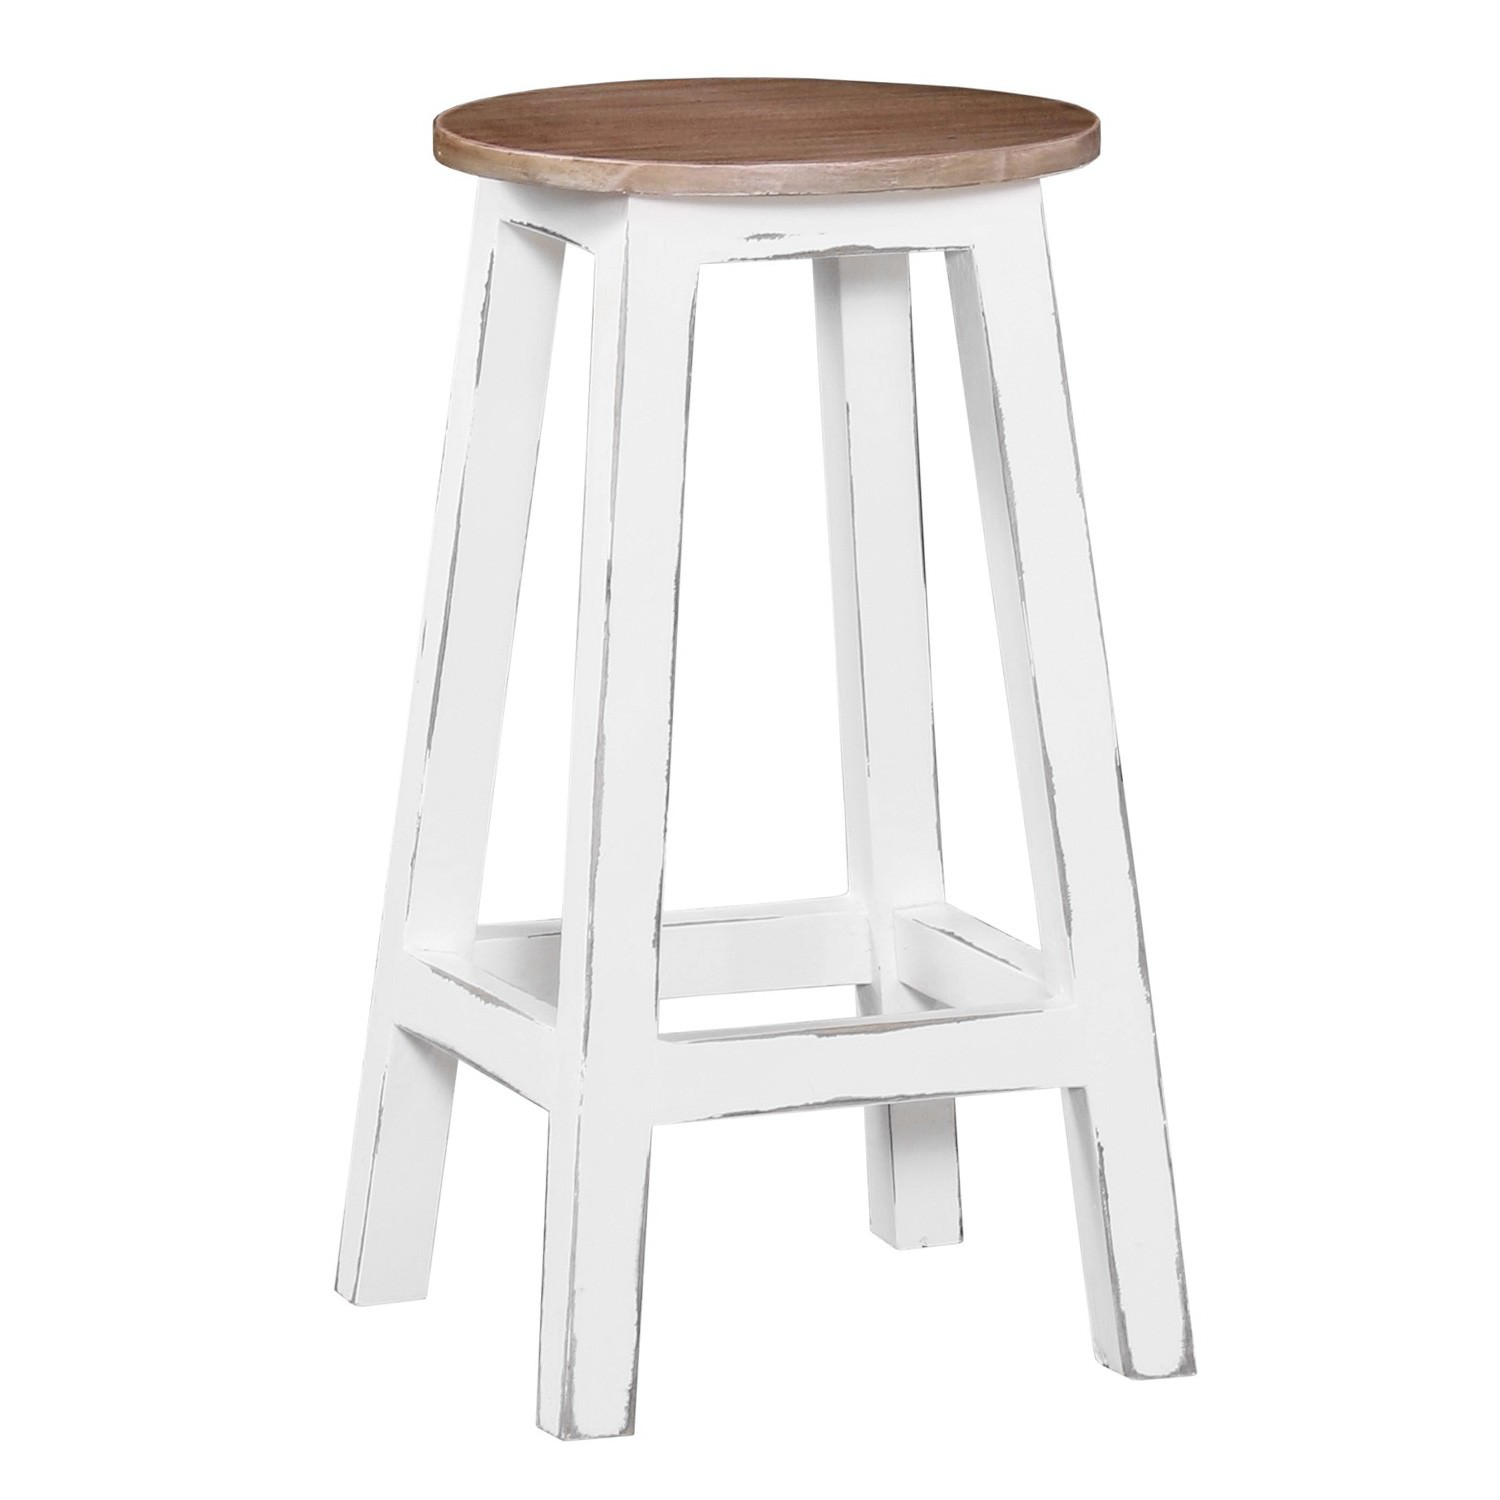 Rosson Mahogany Timber Counter Stool, Driftwood / Distressed White